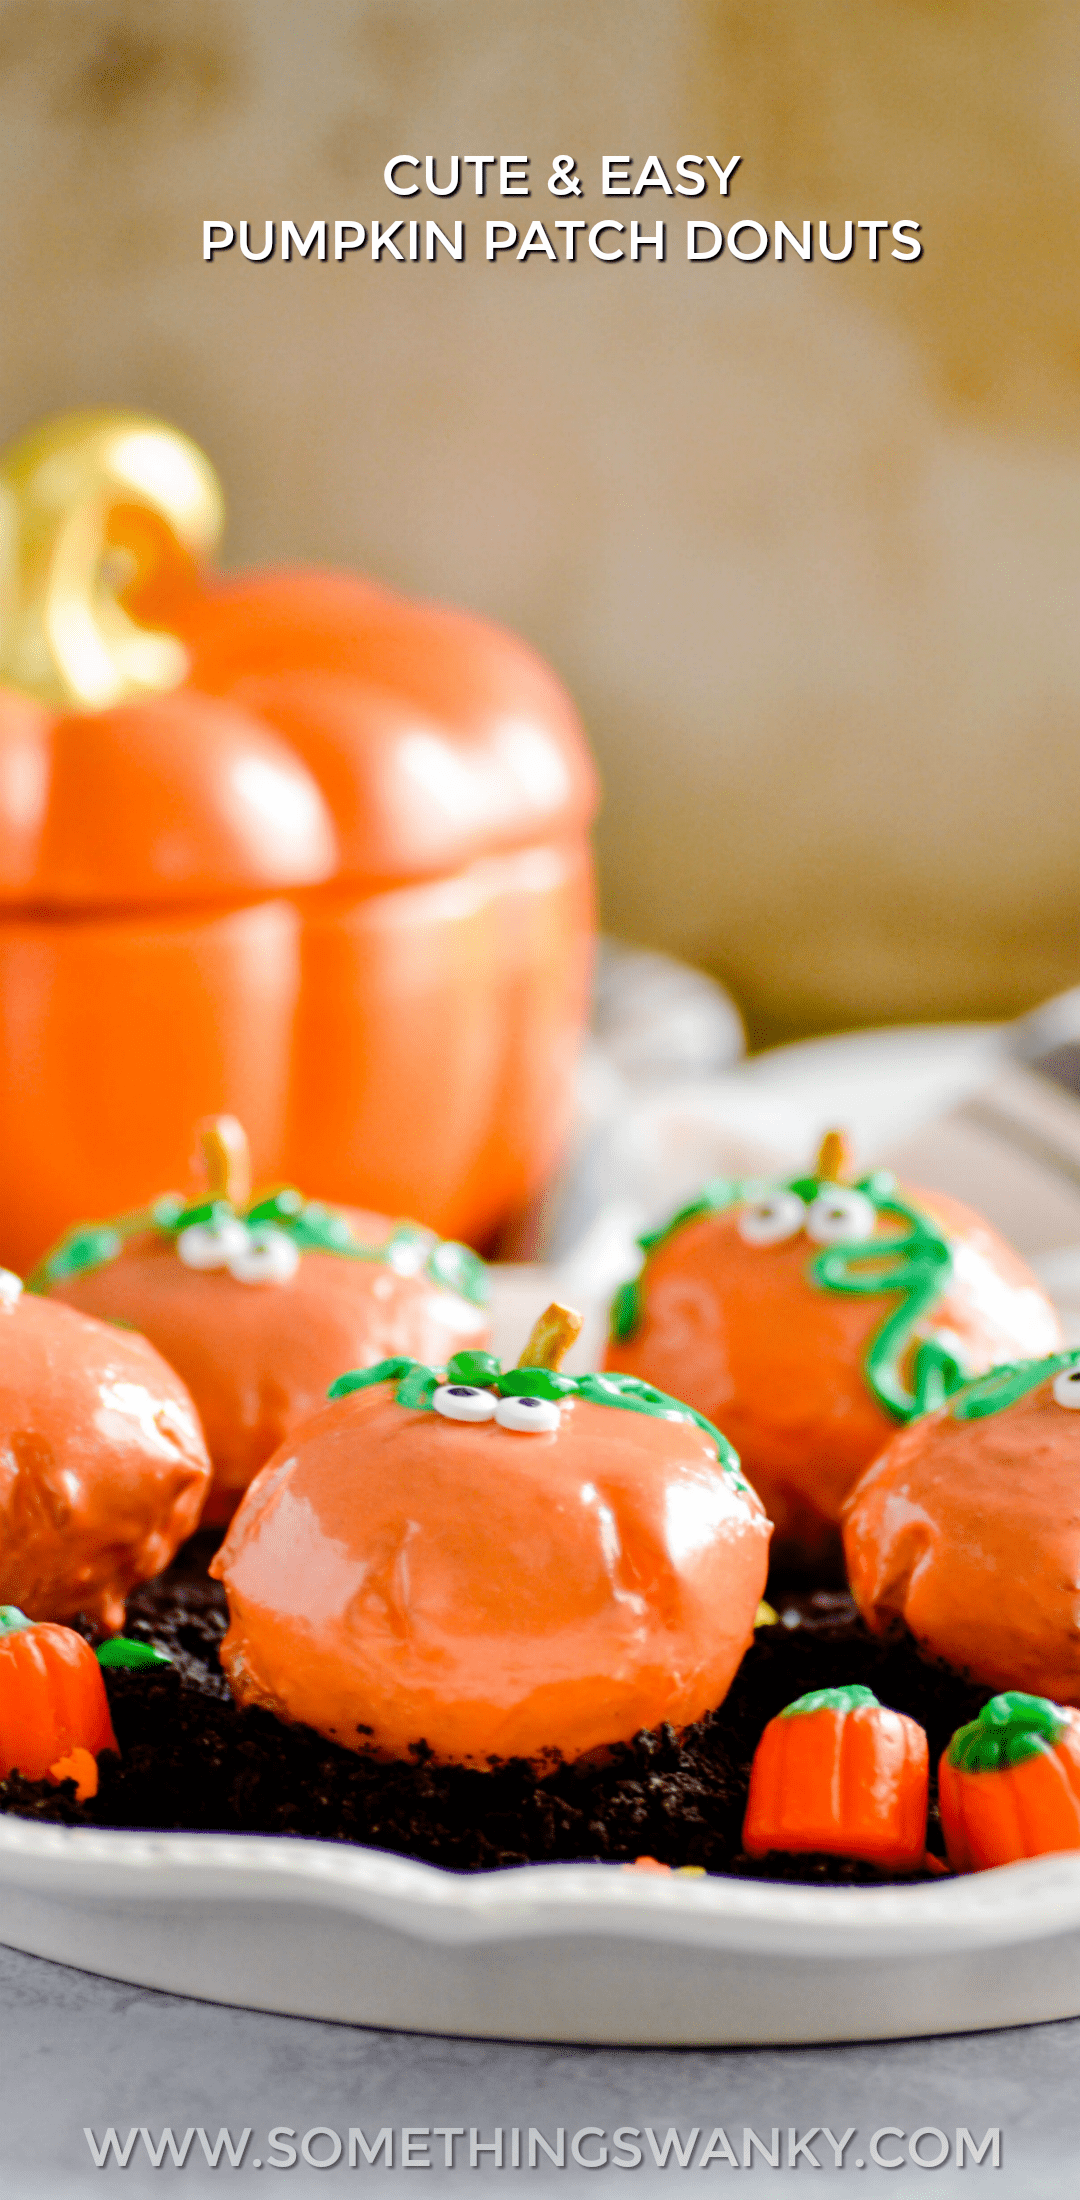 Use Rhodes Rolls to make these Cute Pumpkin Patch Donuts in just a few easy steps.